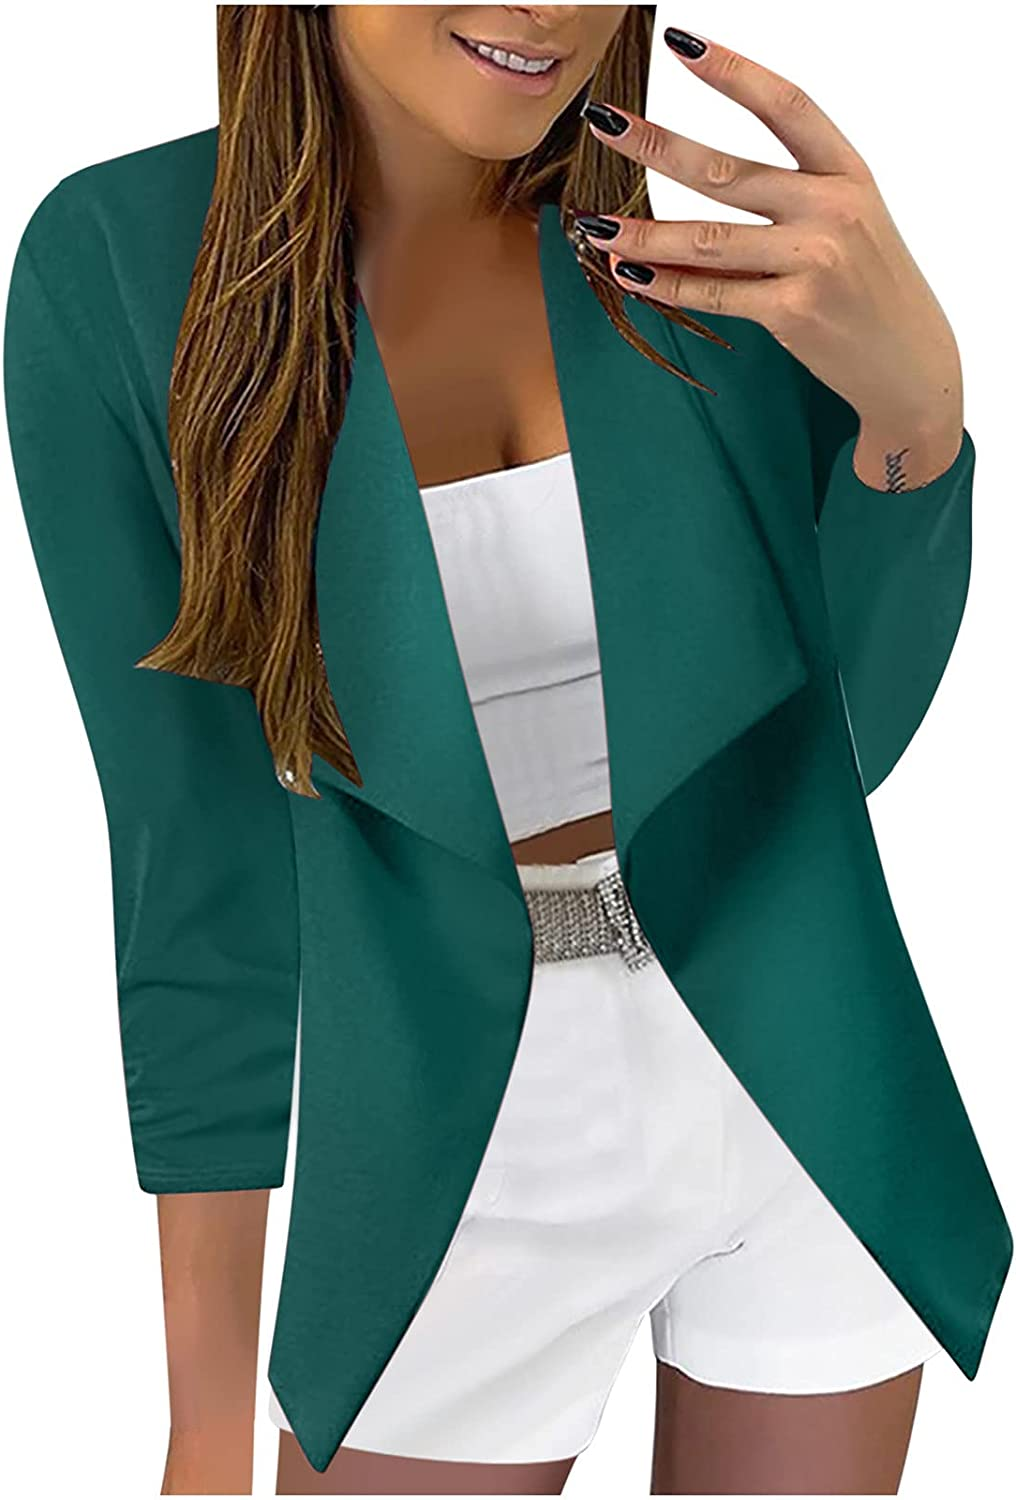 Womens Blazers for Work Casual Lightweight 3/4 Sleeve Cardigan Jackets Women Professional Work Clothes